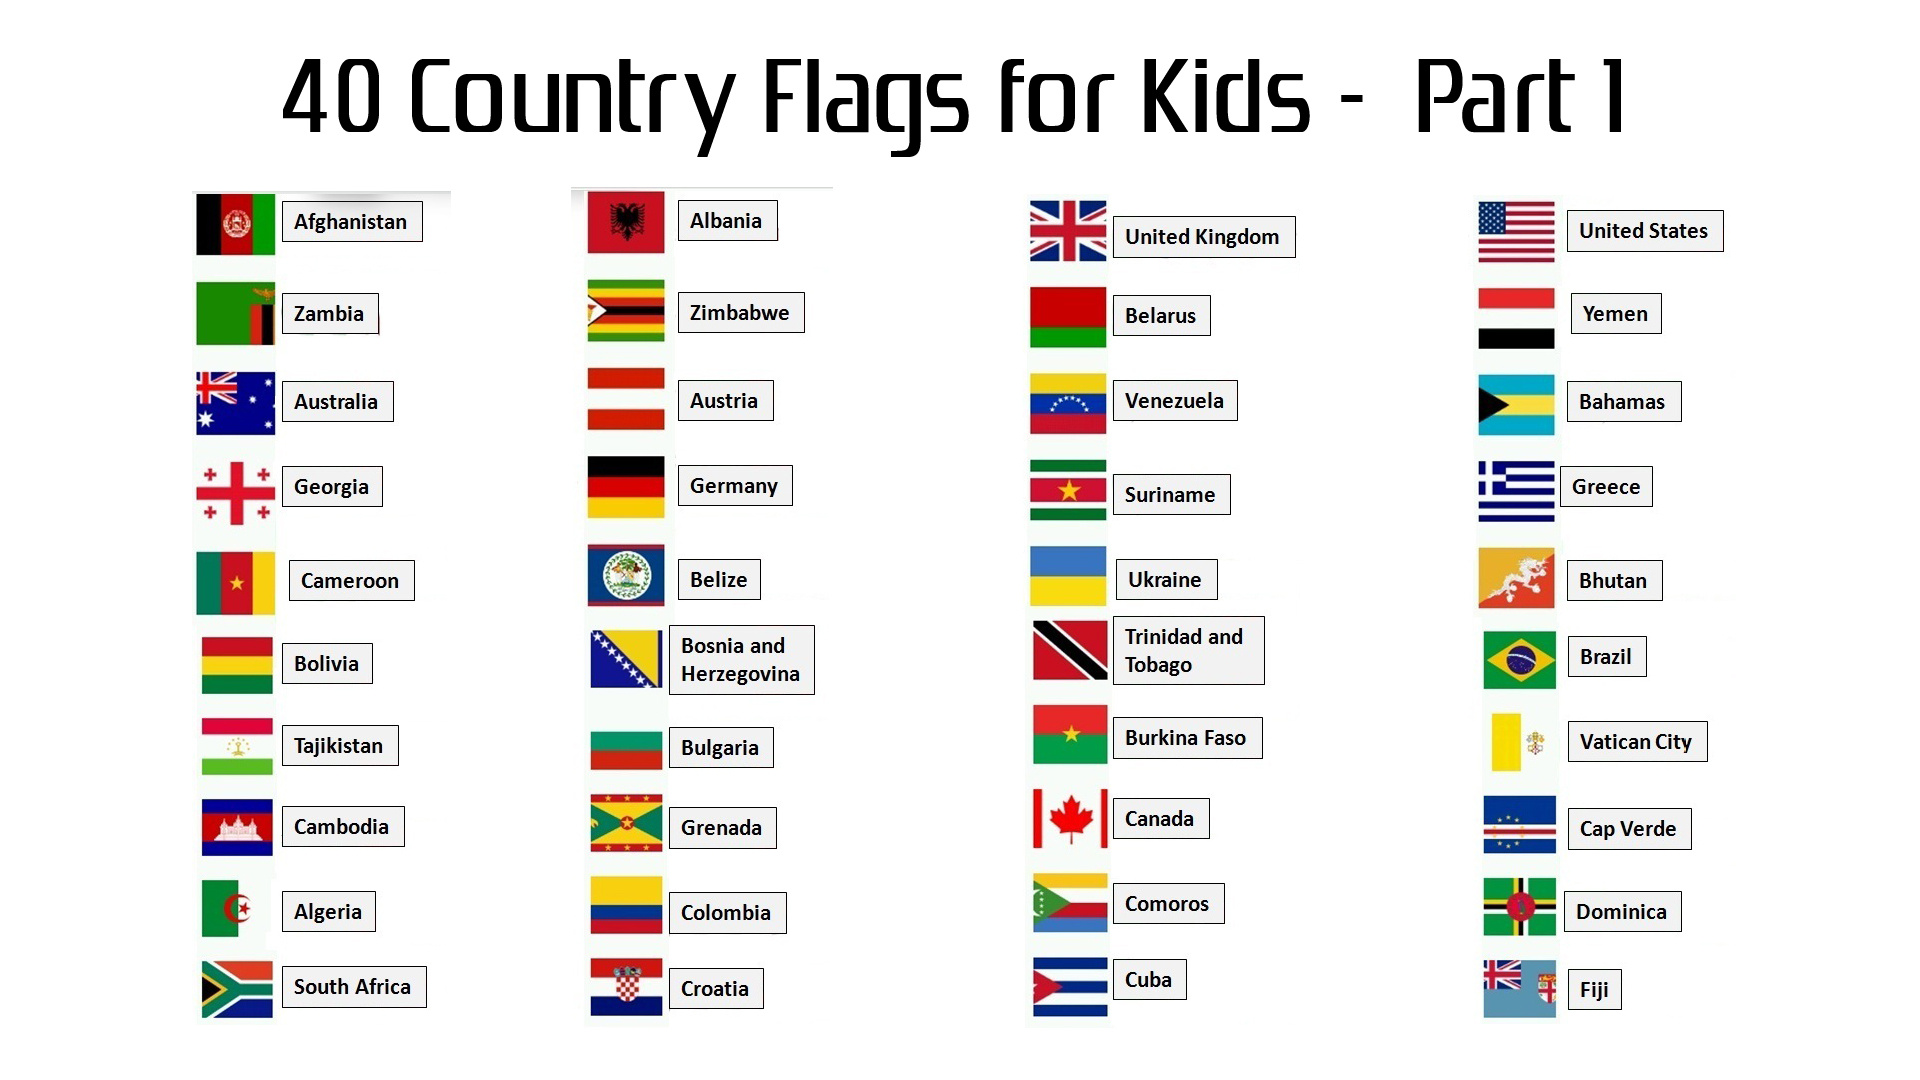 40 Country Flags with Names for Kids - Part 1 - HD Wallpapers | Wallpapers Download | High ...